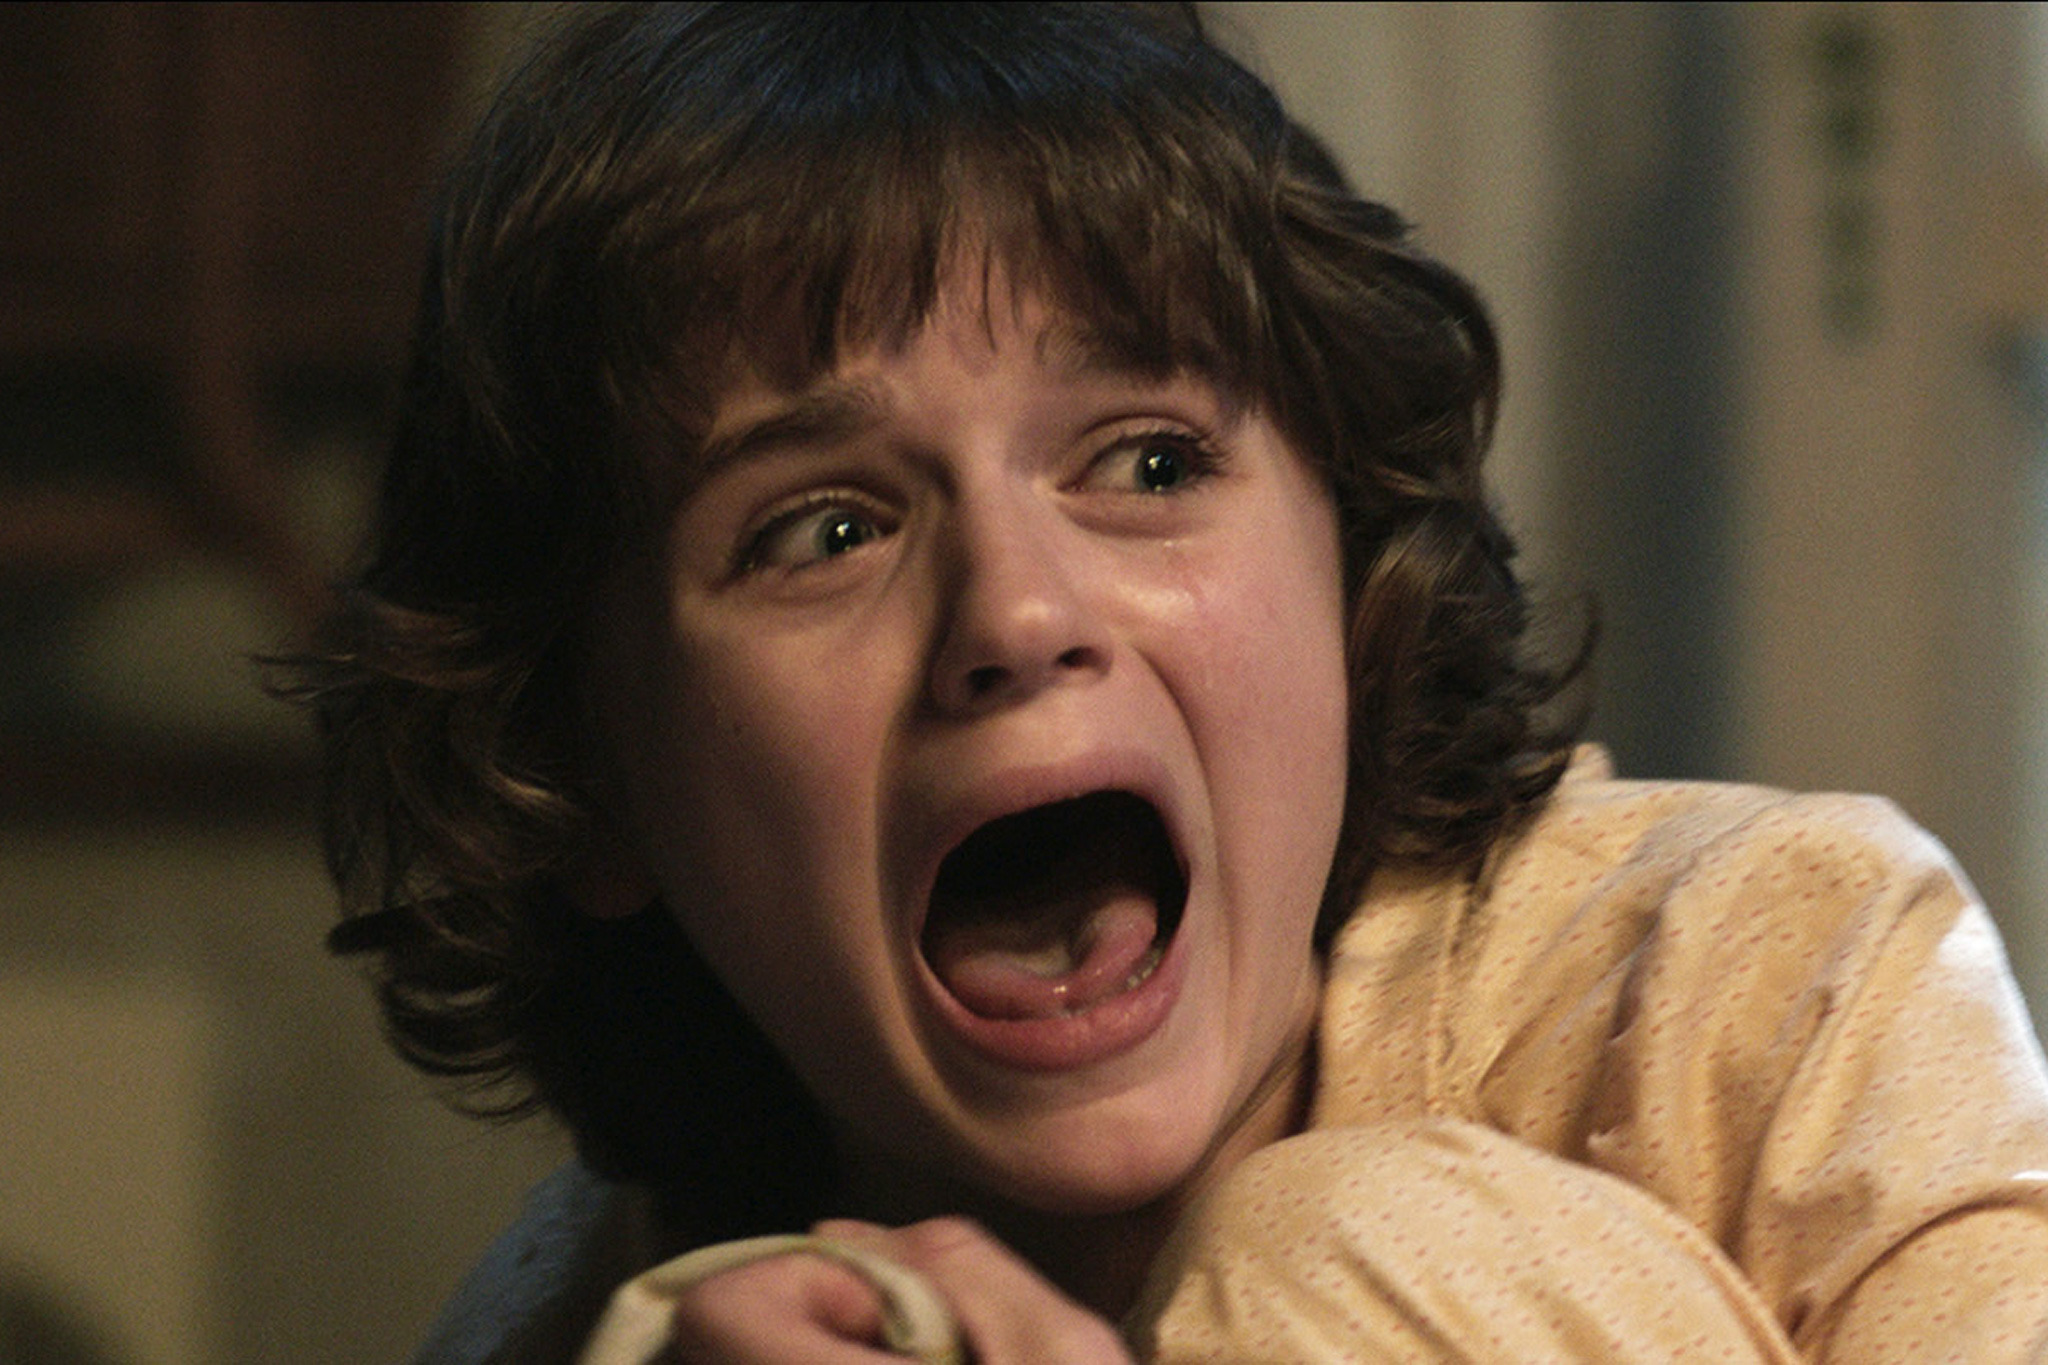 8. The Conjuring